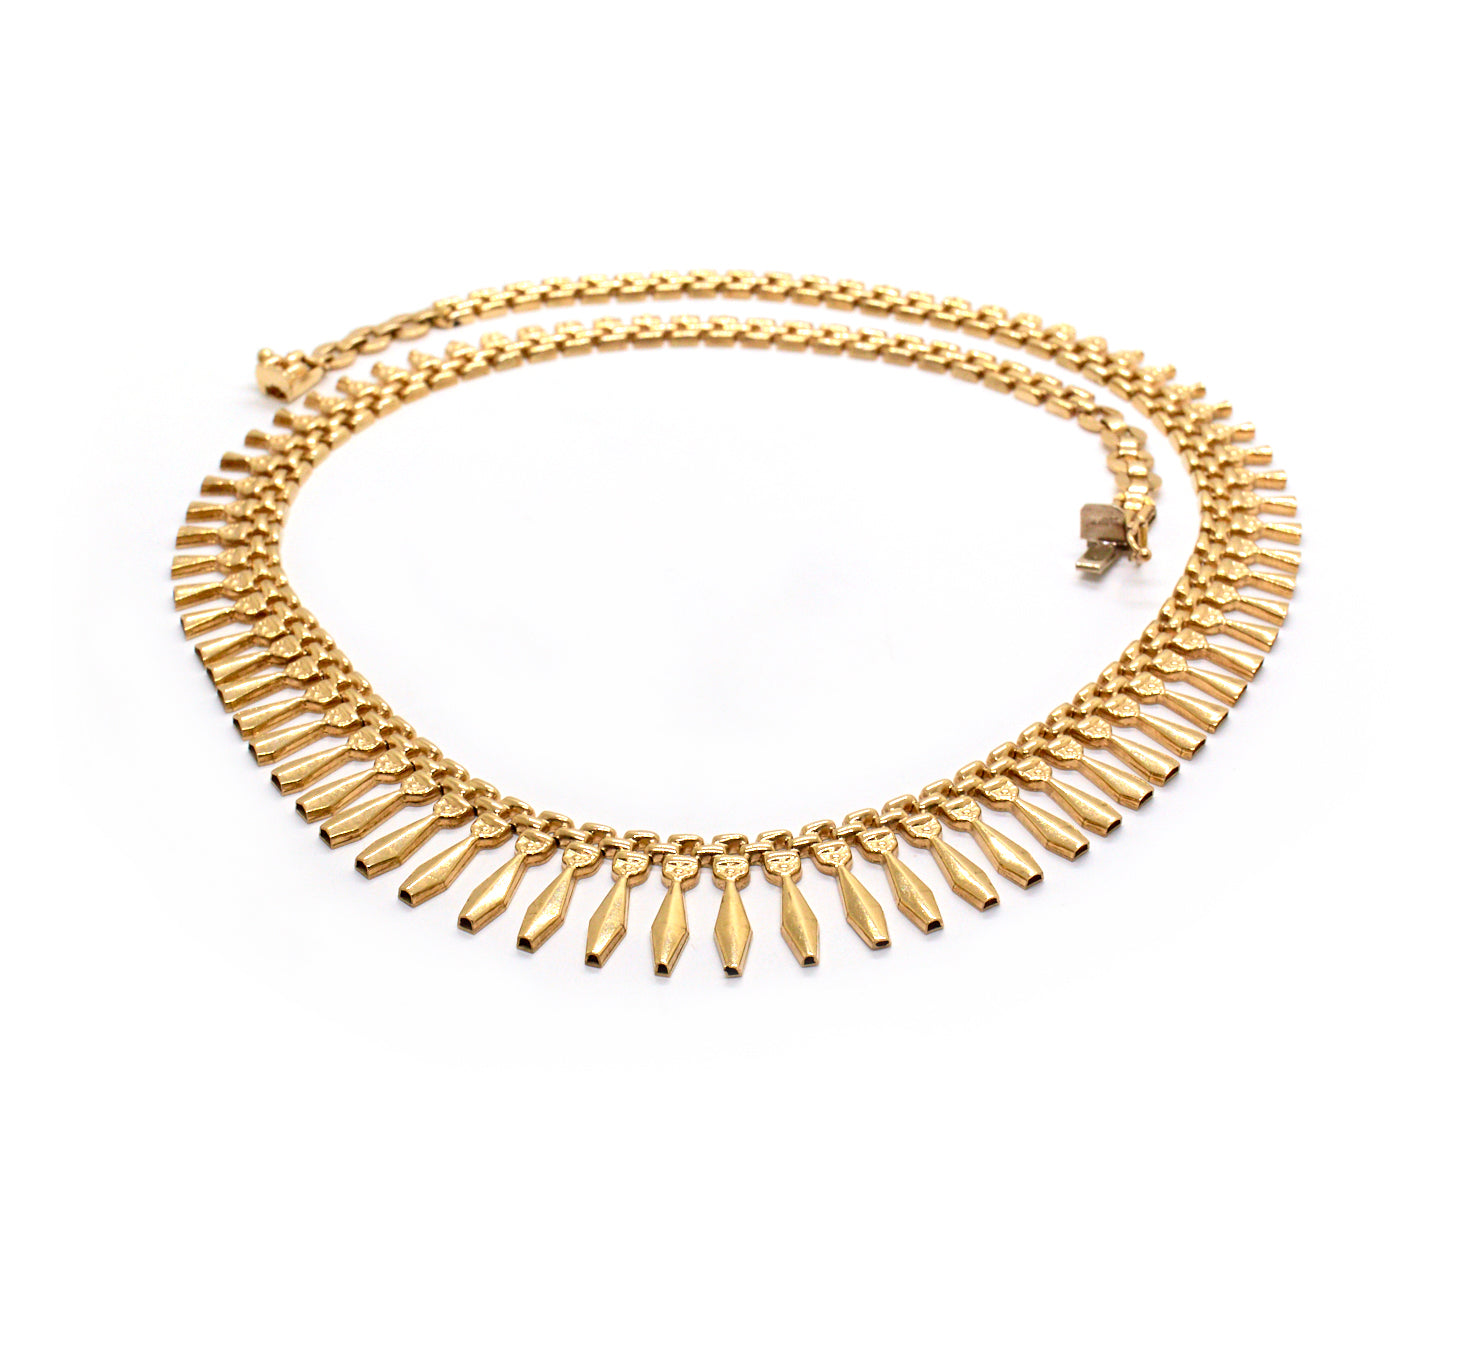 Audrey | Vintage Graduated Gate Design Necklace